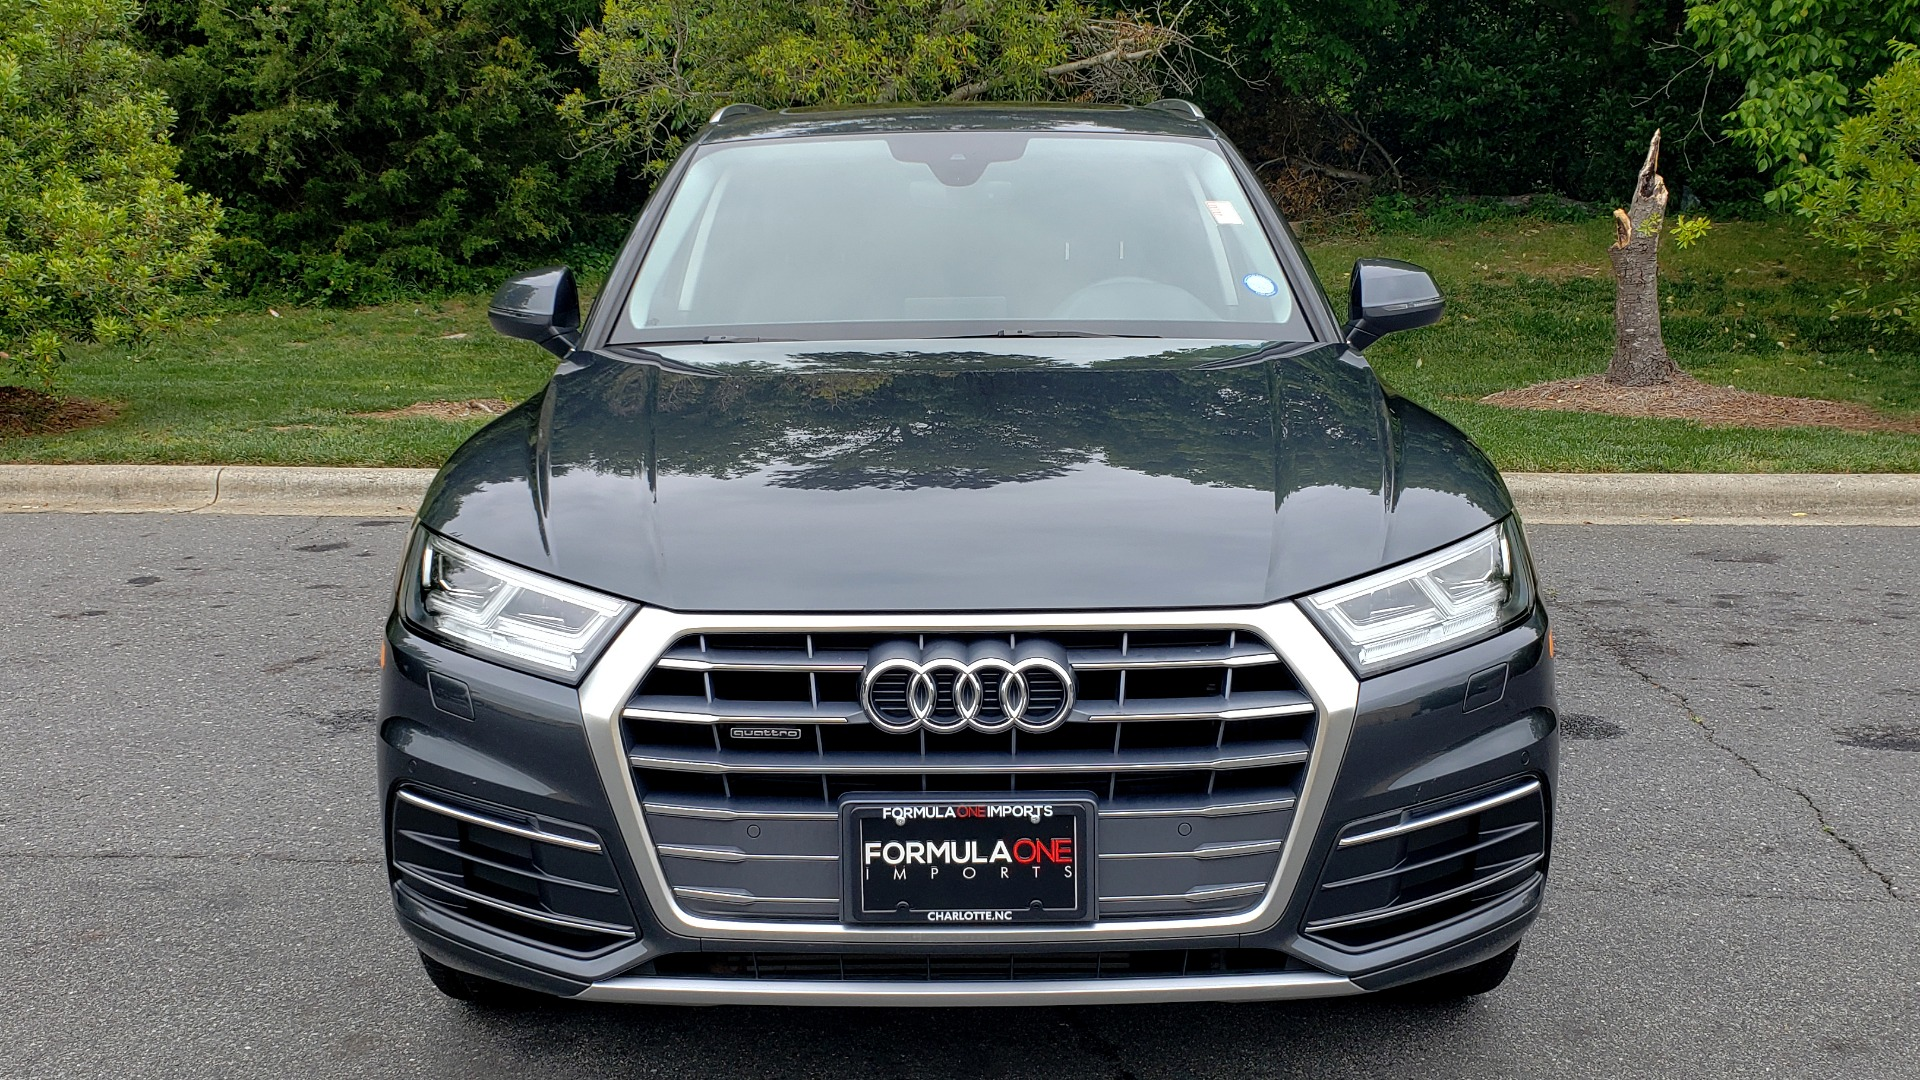 Used 2018 Audi Q5 PREMIUM PLUS / S-TRONIC / NAV / PANO-ROOF / PARK SYS PLUS for sale Sold at Formula Imports in Charlotte NC 28227 21